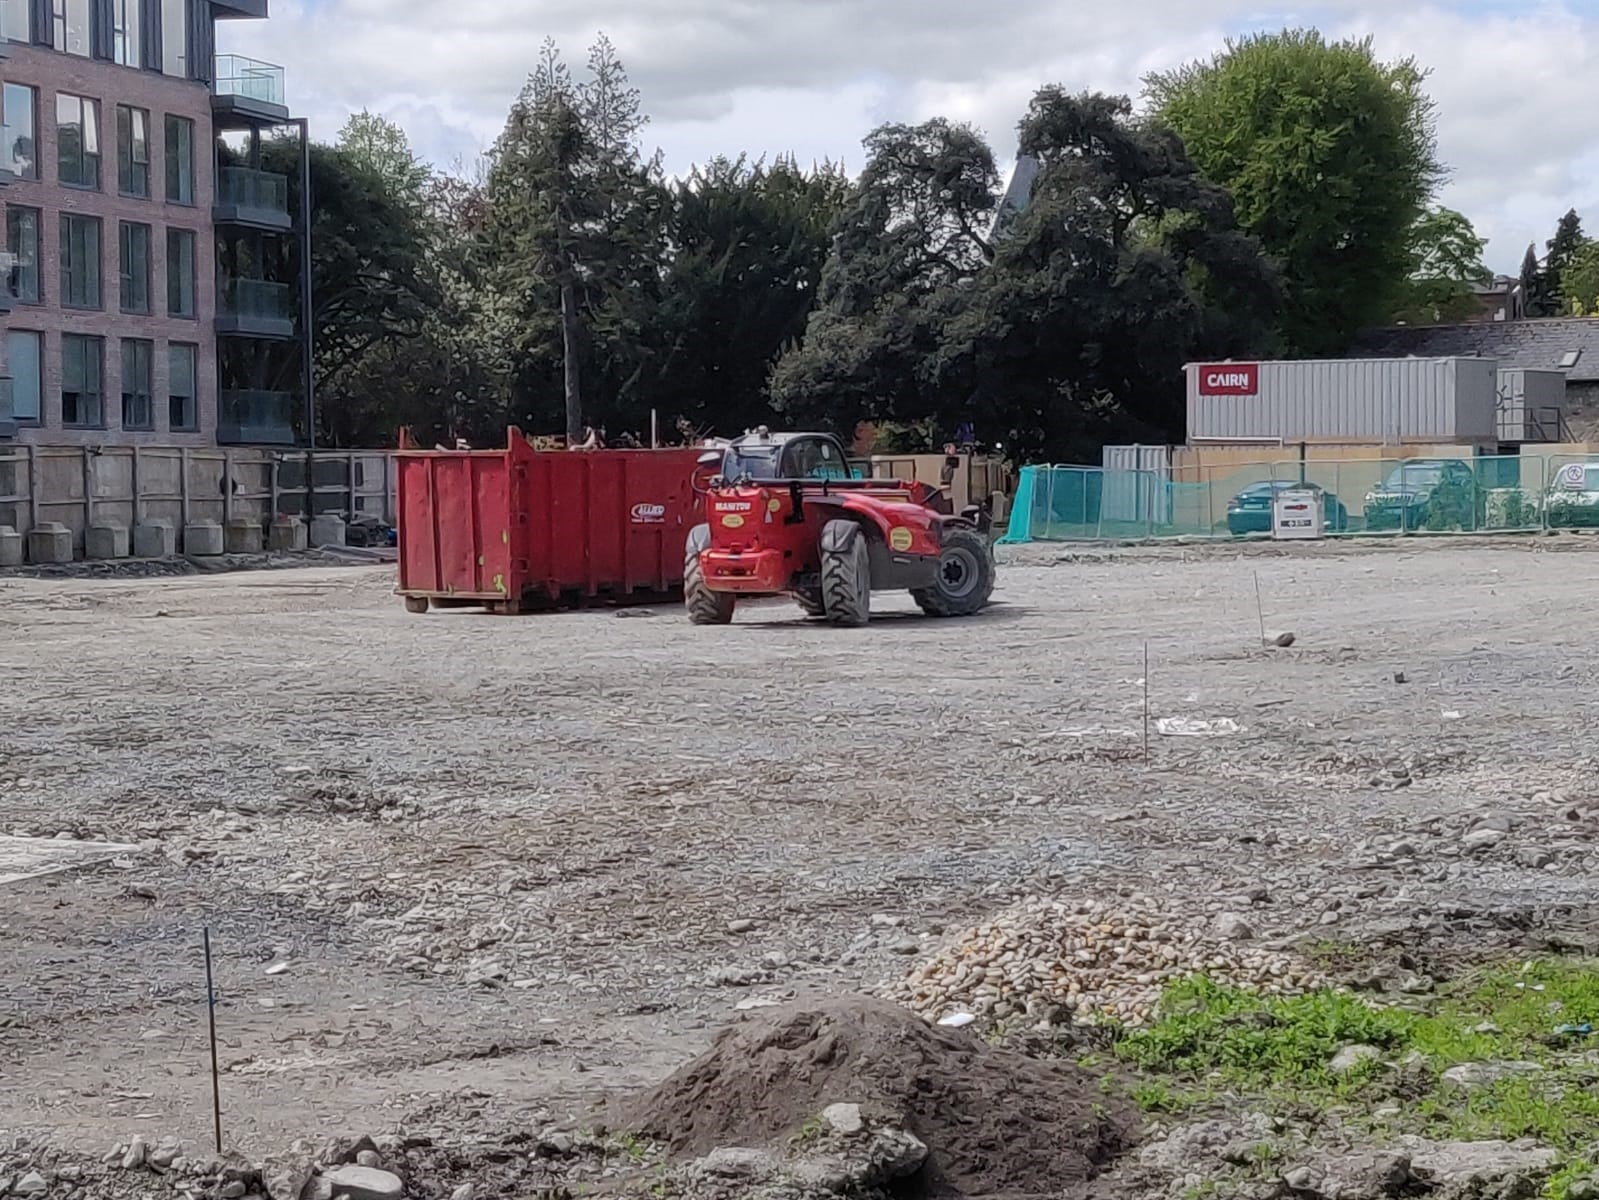 Cairn PLC Rathgar Completed